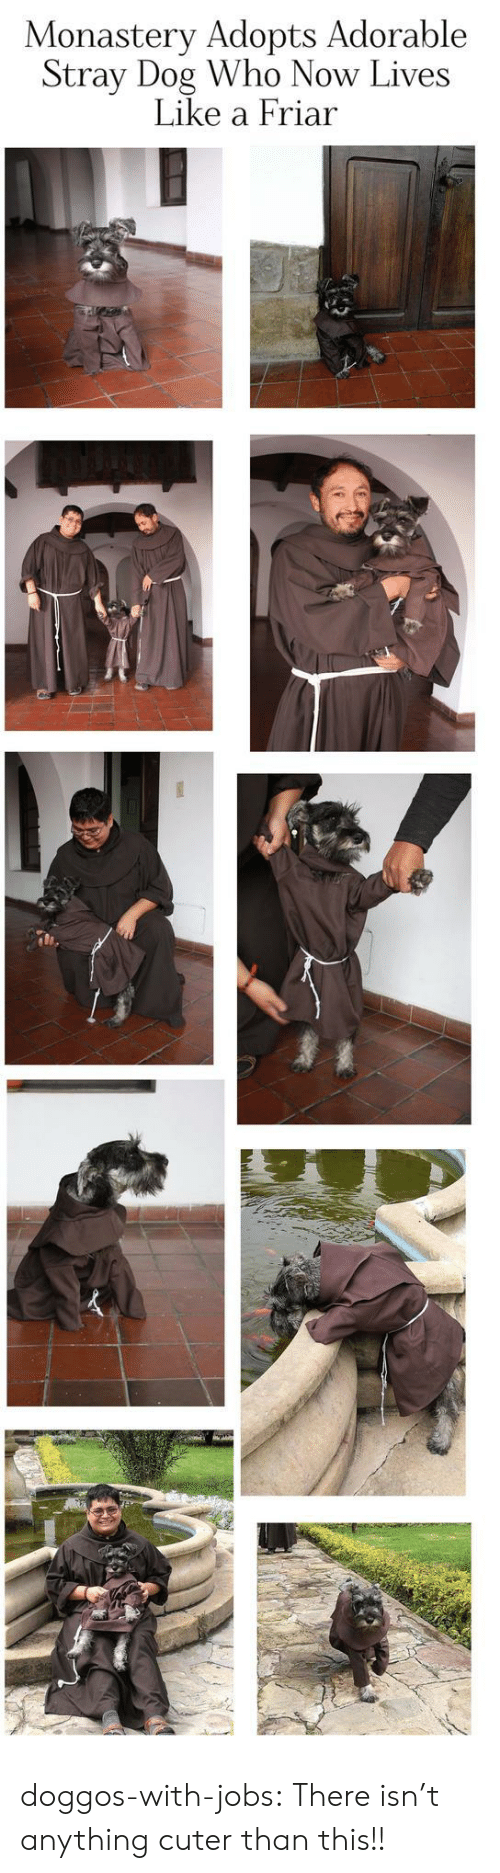 Tumblr, Blog, and Jobs: Monastery Adopts Adorable  Stray Dog Who Now Lives  Like a Friar doggos-with-jobs:  There isn't anything cuter than this!!